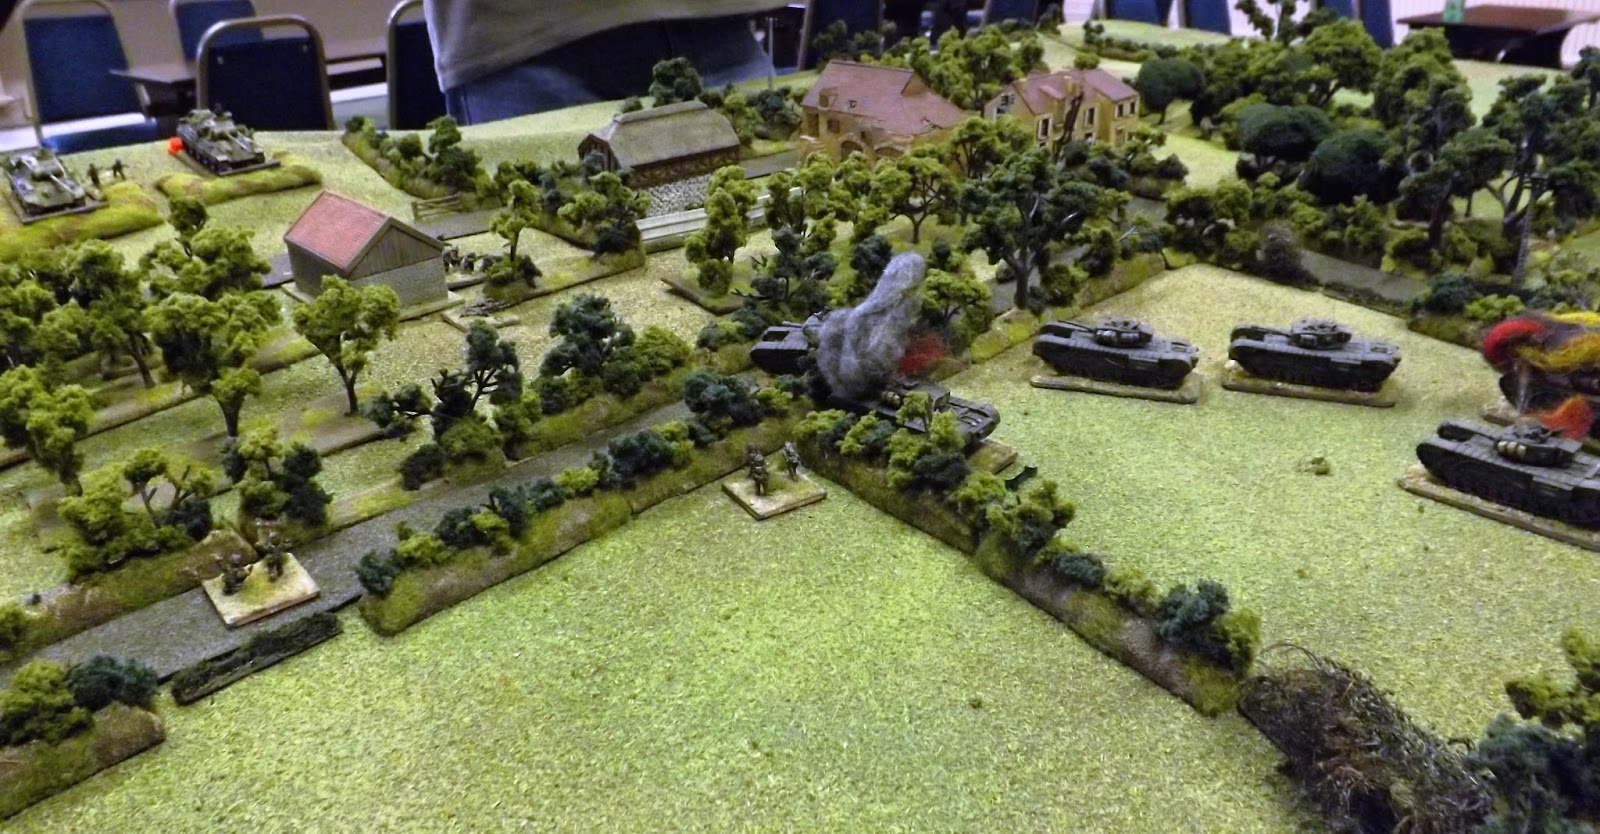 The Welsh have established a lodgement in the farm, clearing the MG nests, but the attacks stalls in the face of heavy casualties